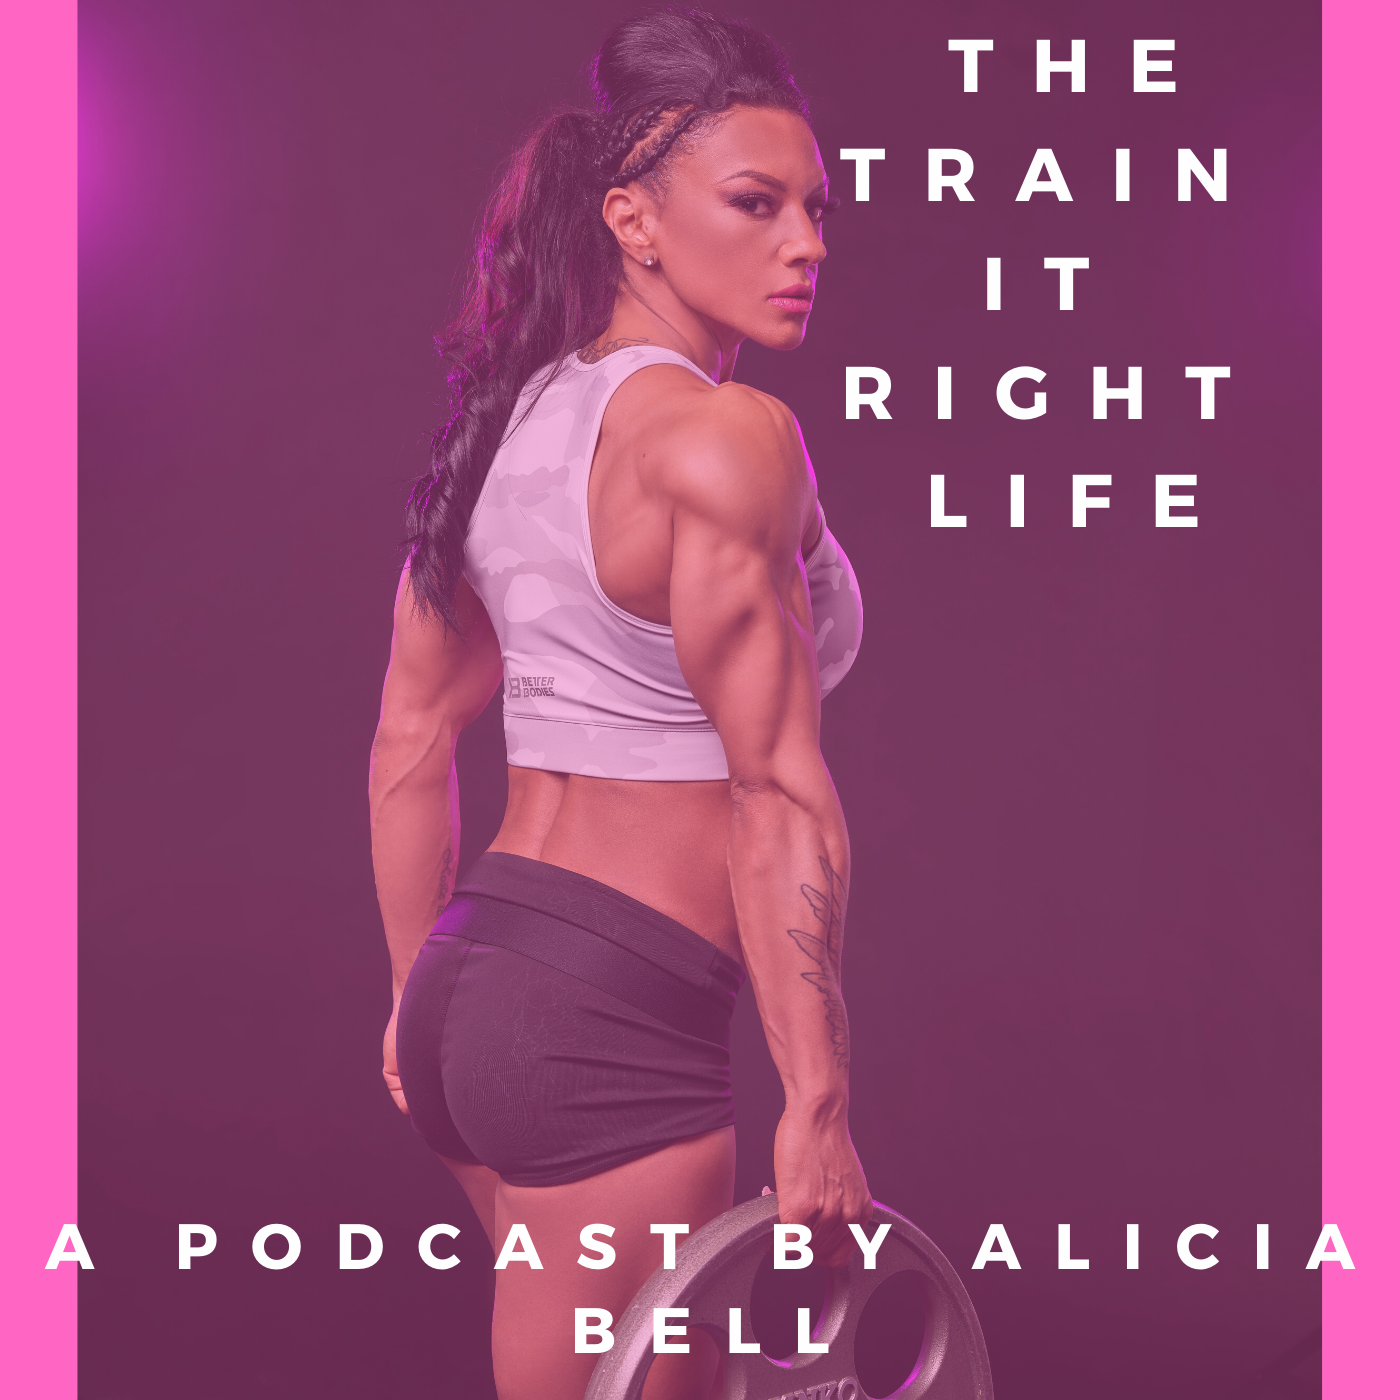 Episode 14- The Train It Right Life   Life Update  Why HD Muscle? - burst 1